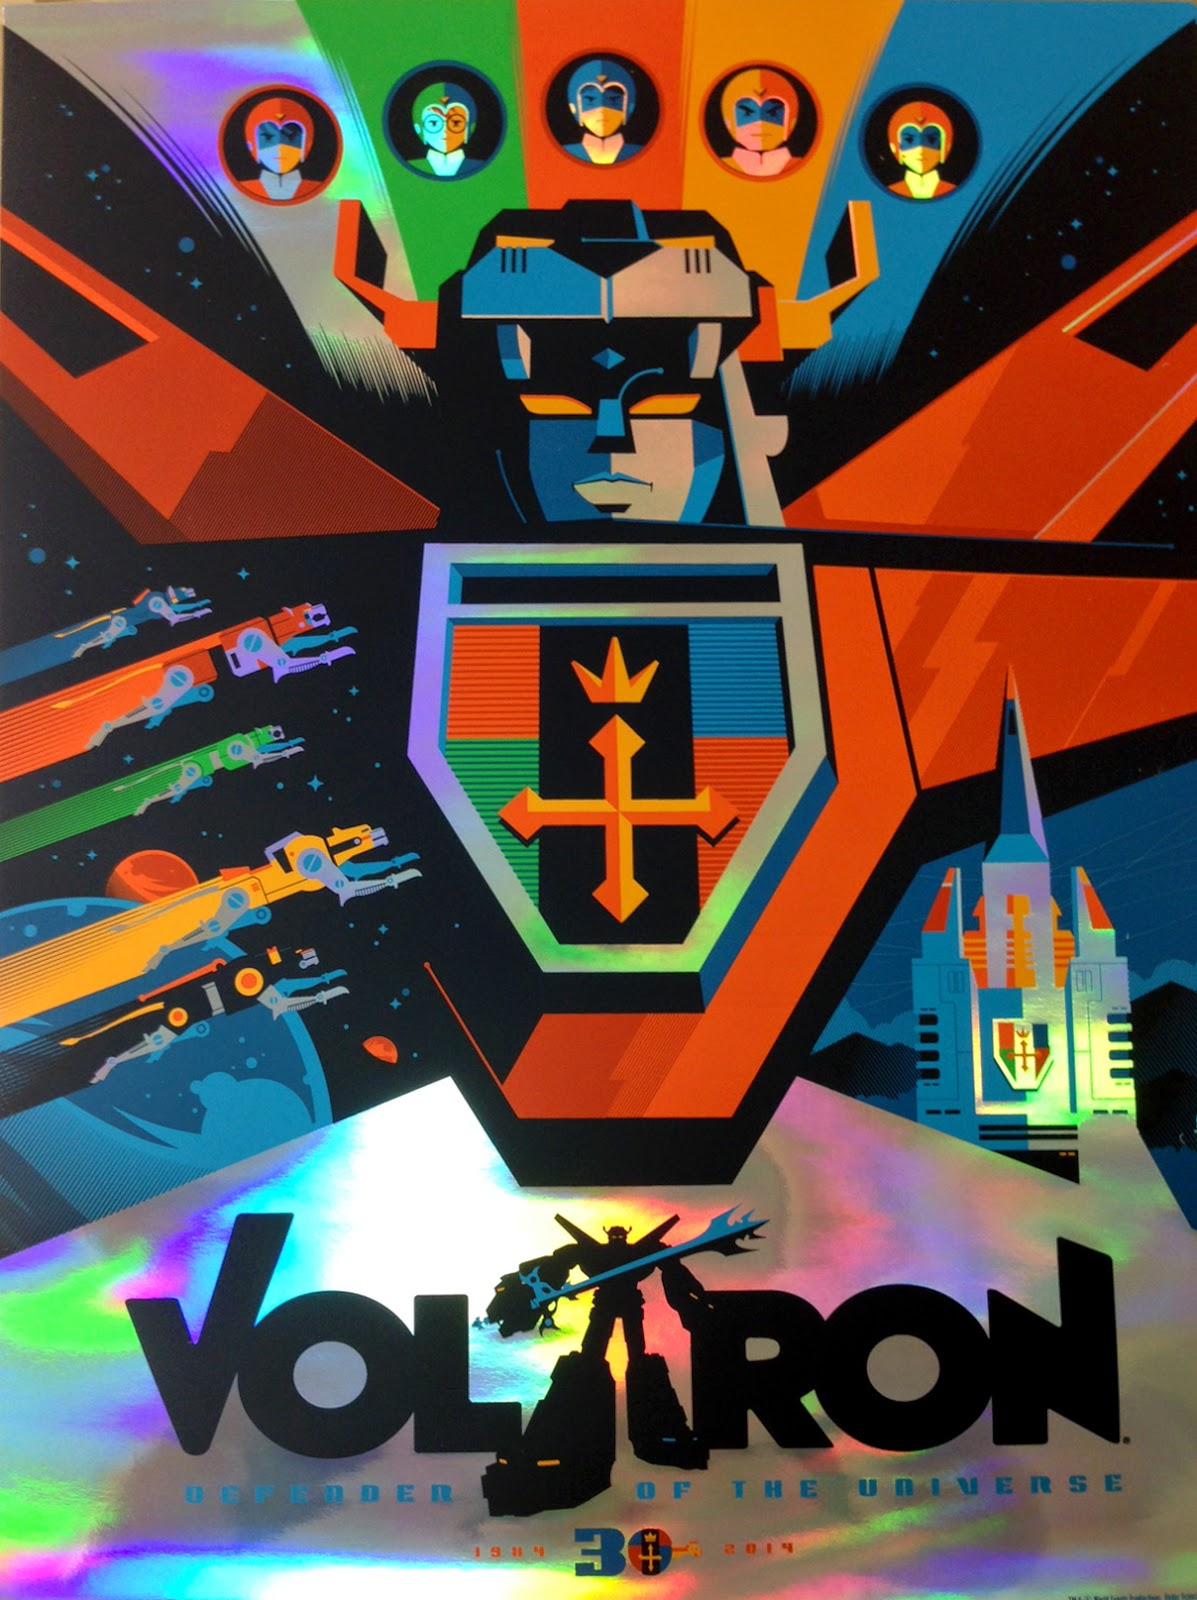 New York Comic Con 2014 Exclusive Voltron Holofoil Variant Screen Print by Tom Whalen